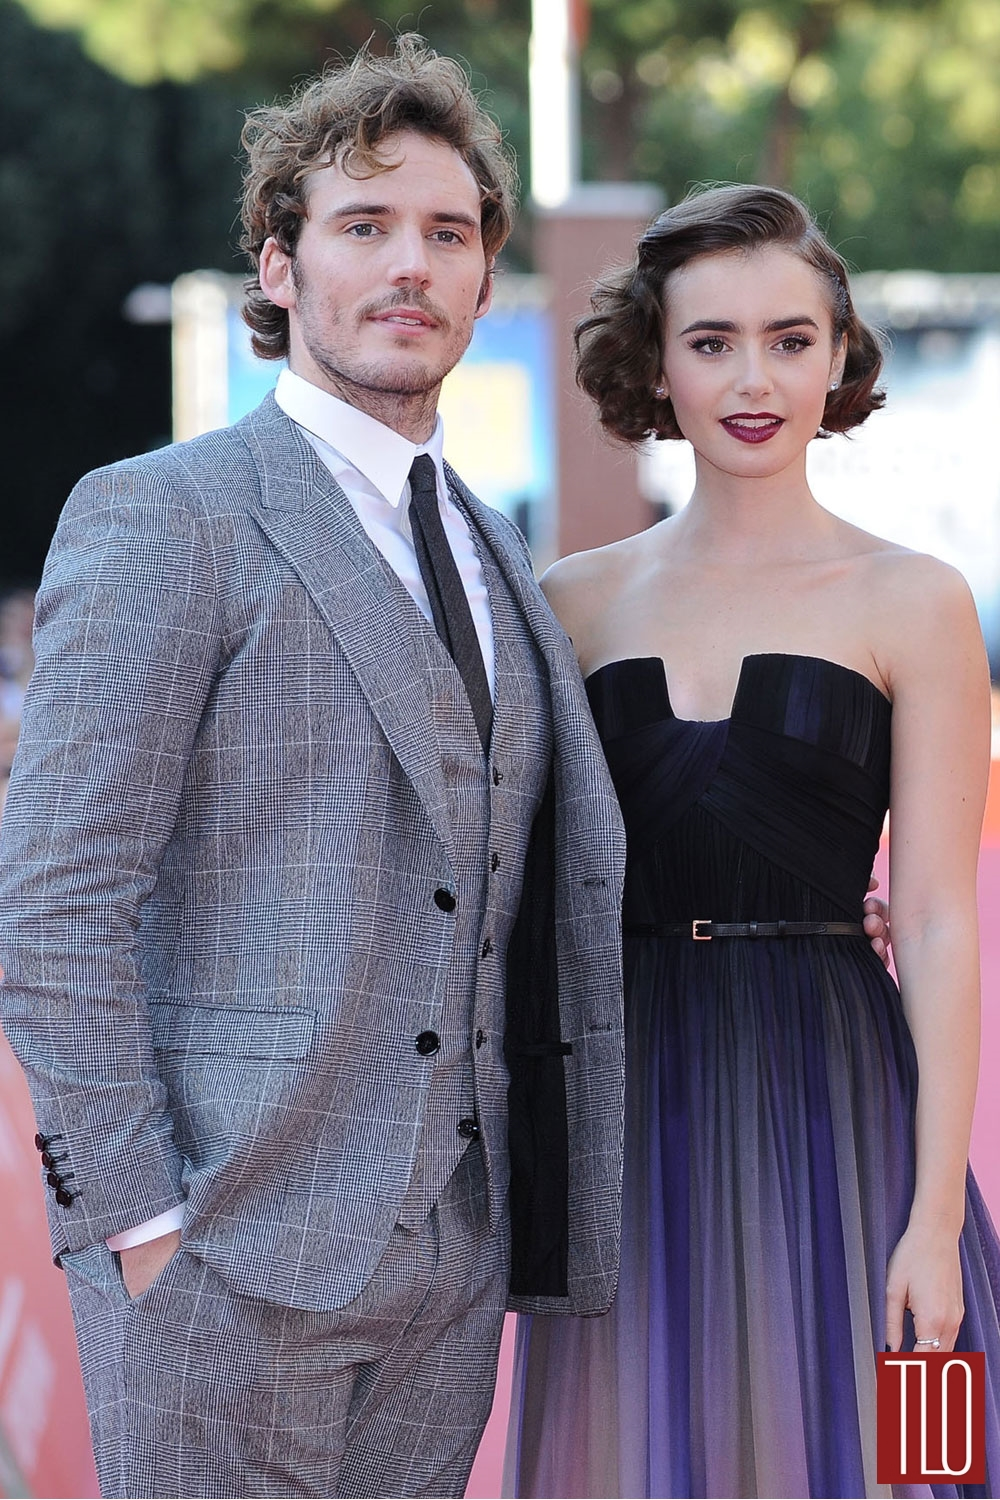 Sam-Claflin-Lily-Collins-Love-Rosie-Preiere-Red-Carpet-Elie-Saab-Couture-London-Film-Festival-Tom-Lorenzo-Site-TLO (1)